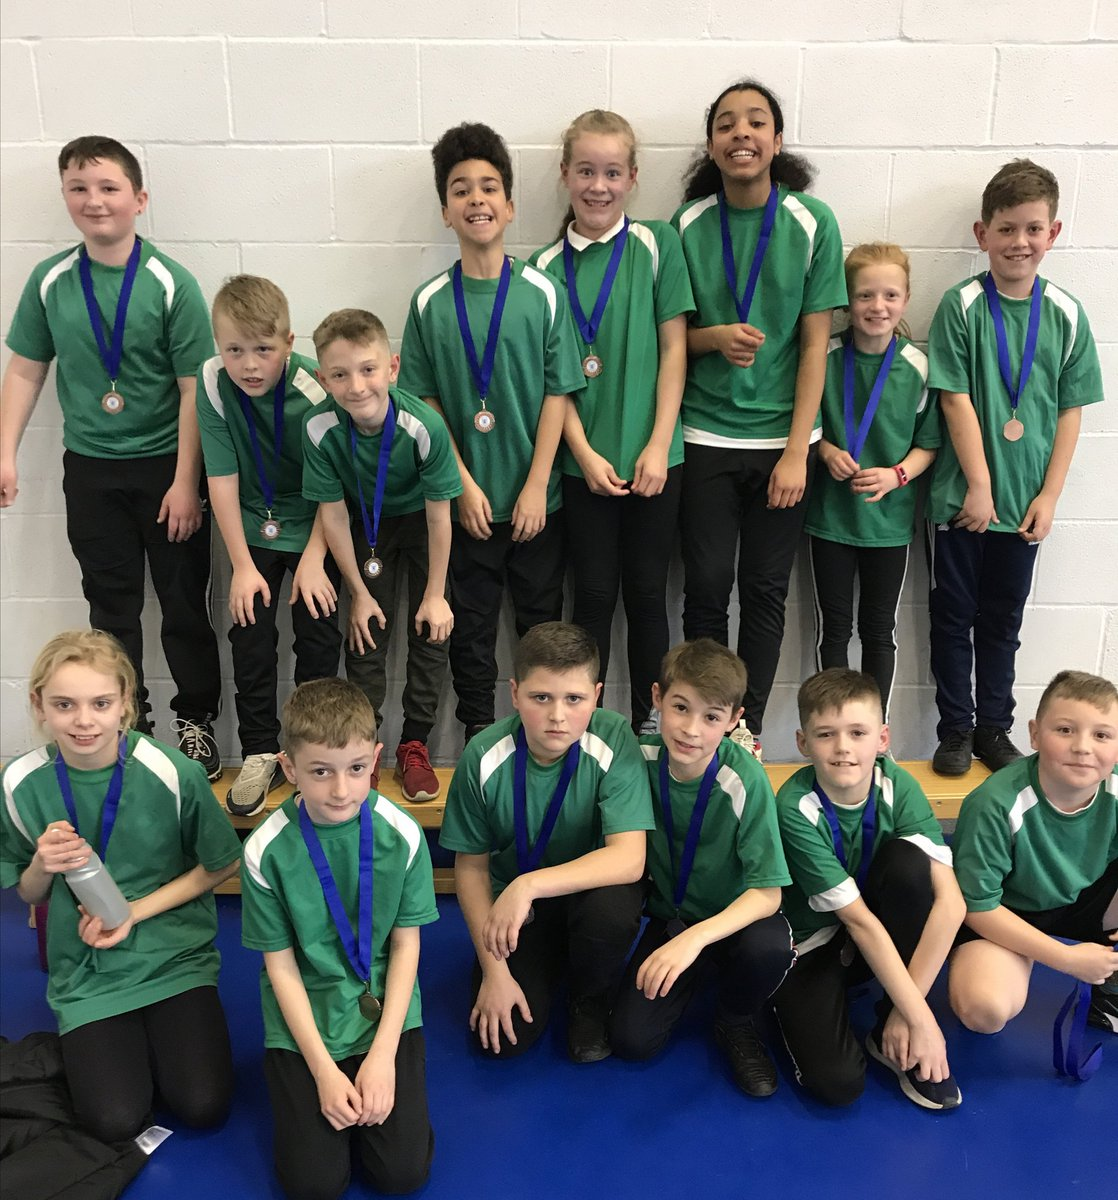 test Twitter Media - 2 X Bronze for the handball teams from y5 and y6 @KingsHeathSP both winning at least one game. https://t.co/s93rfqCn9p